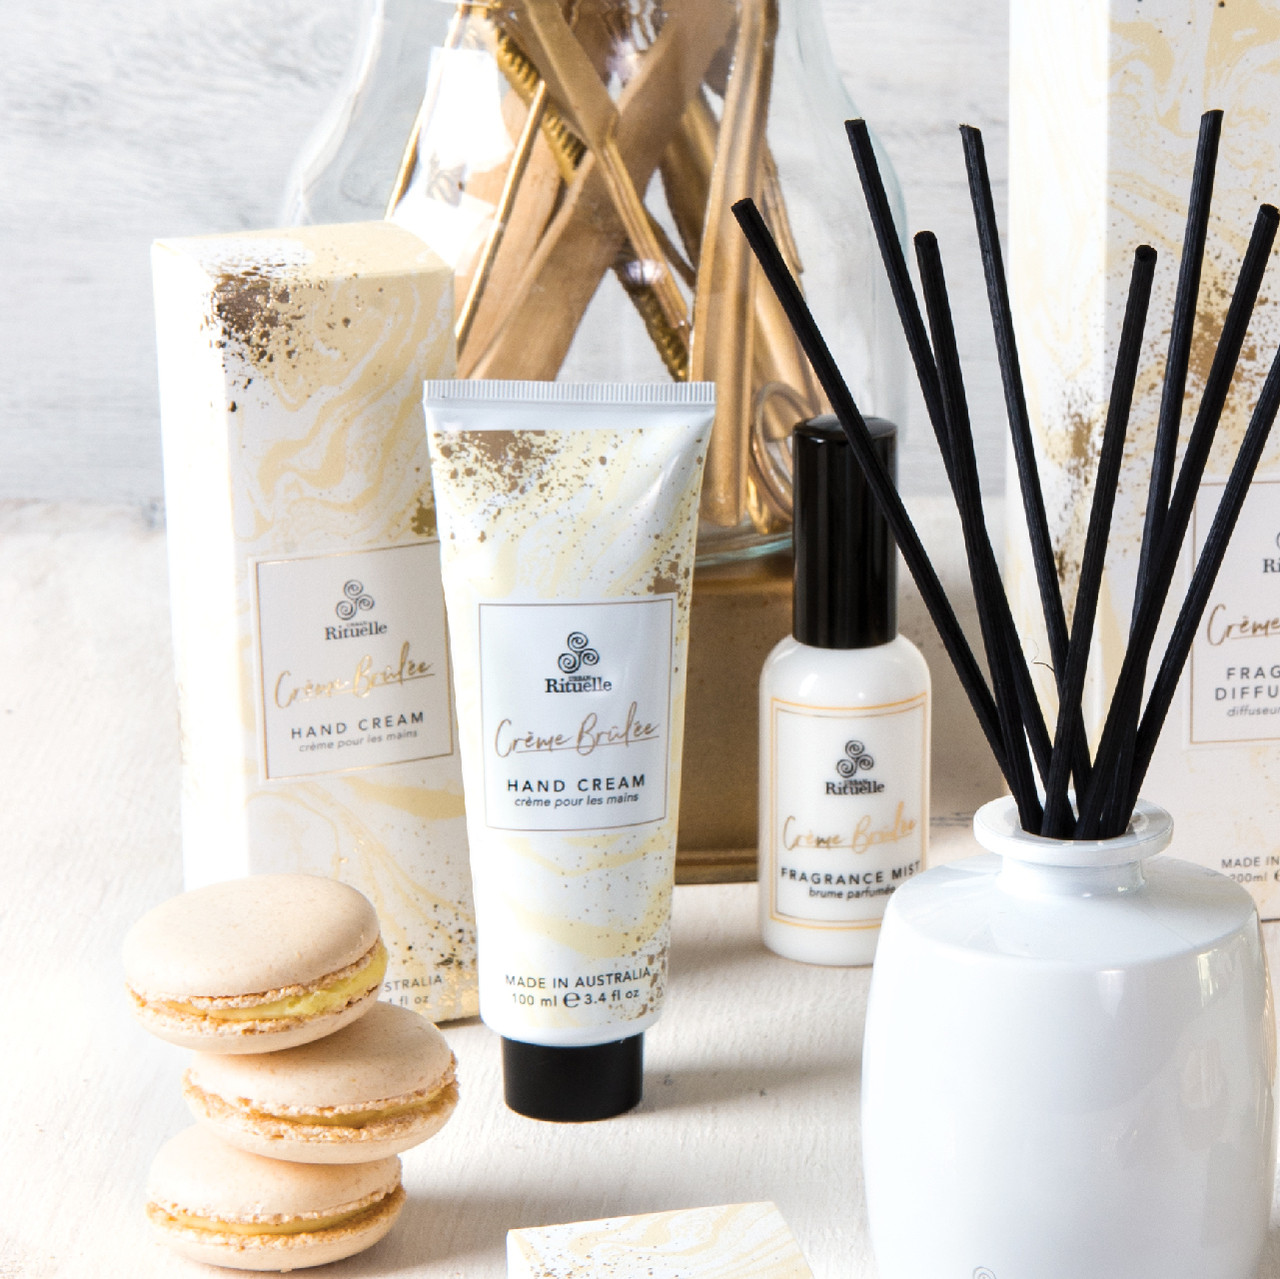 Sweet Treats - Creme Brulee -  Hand Cream - Urban Rituelle